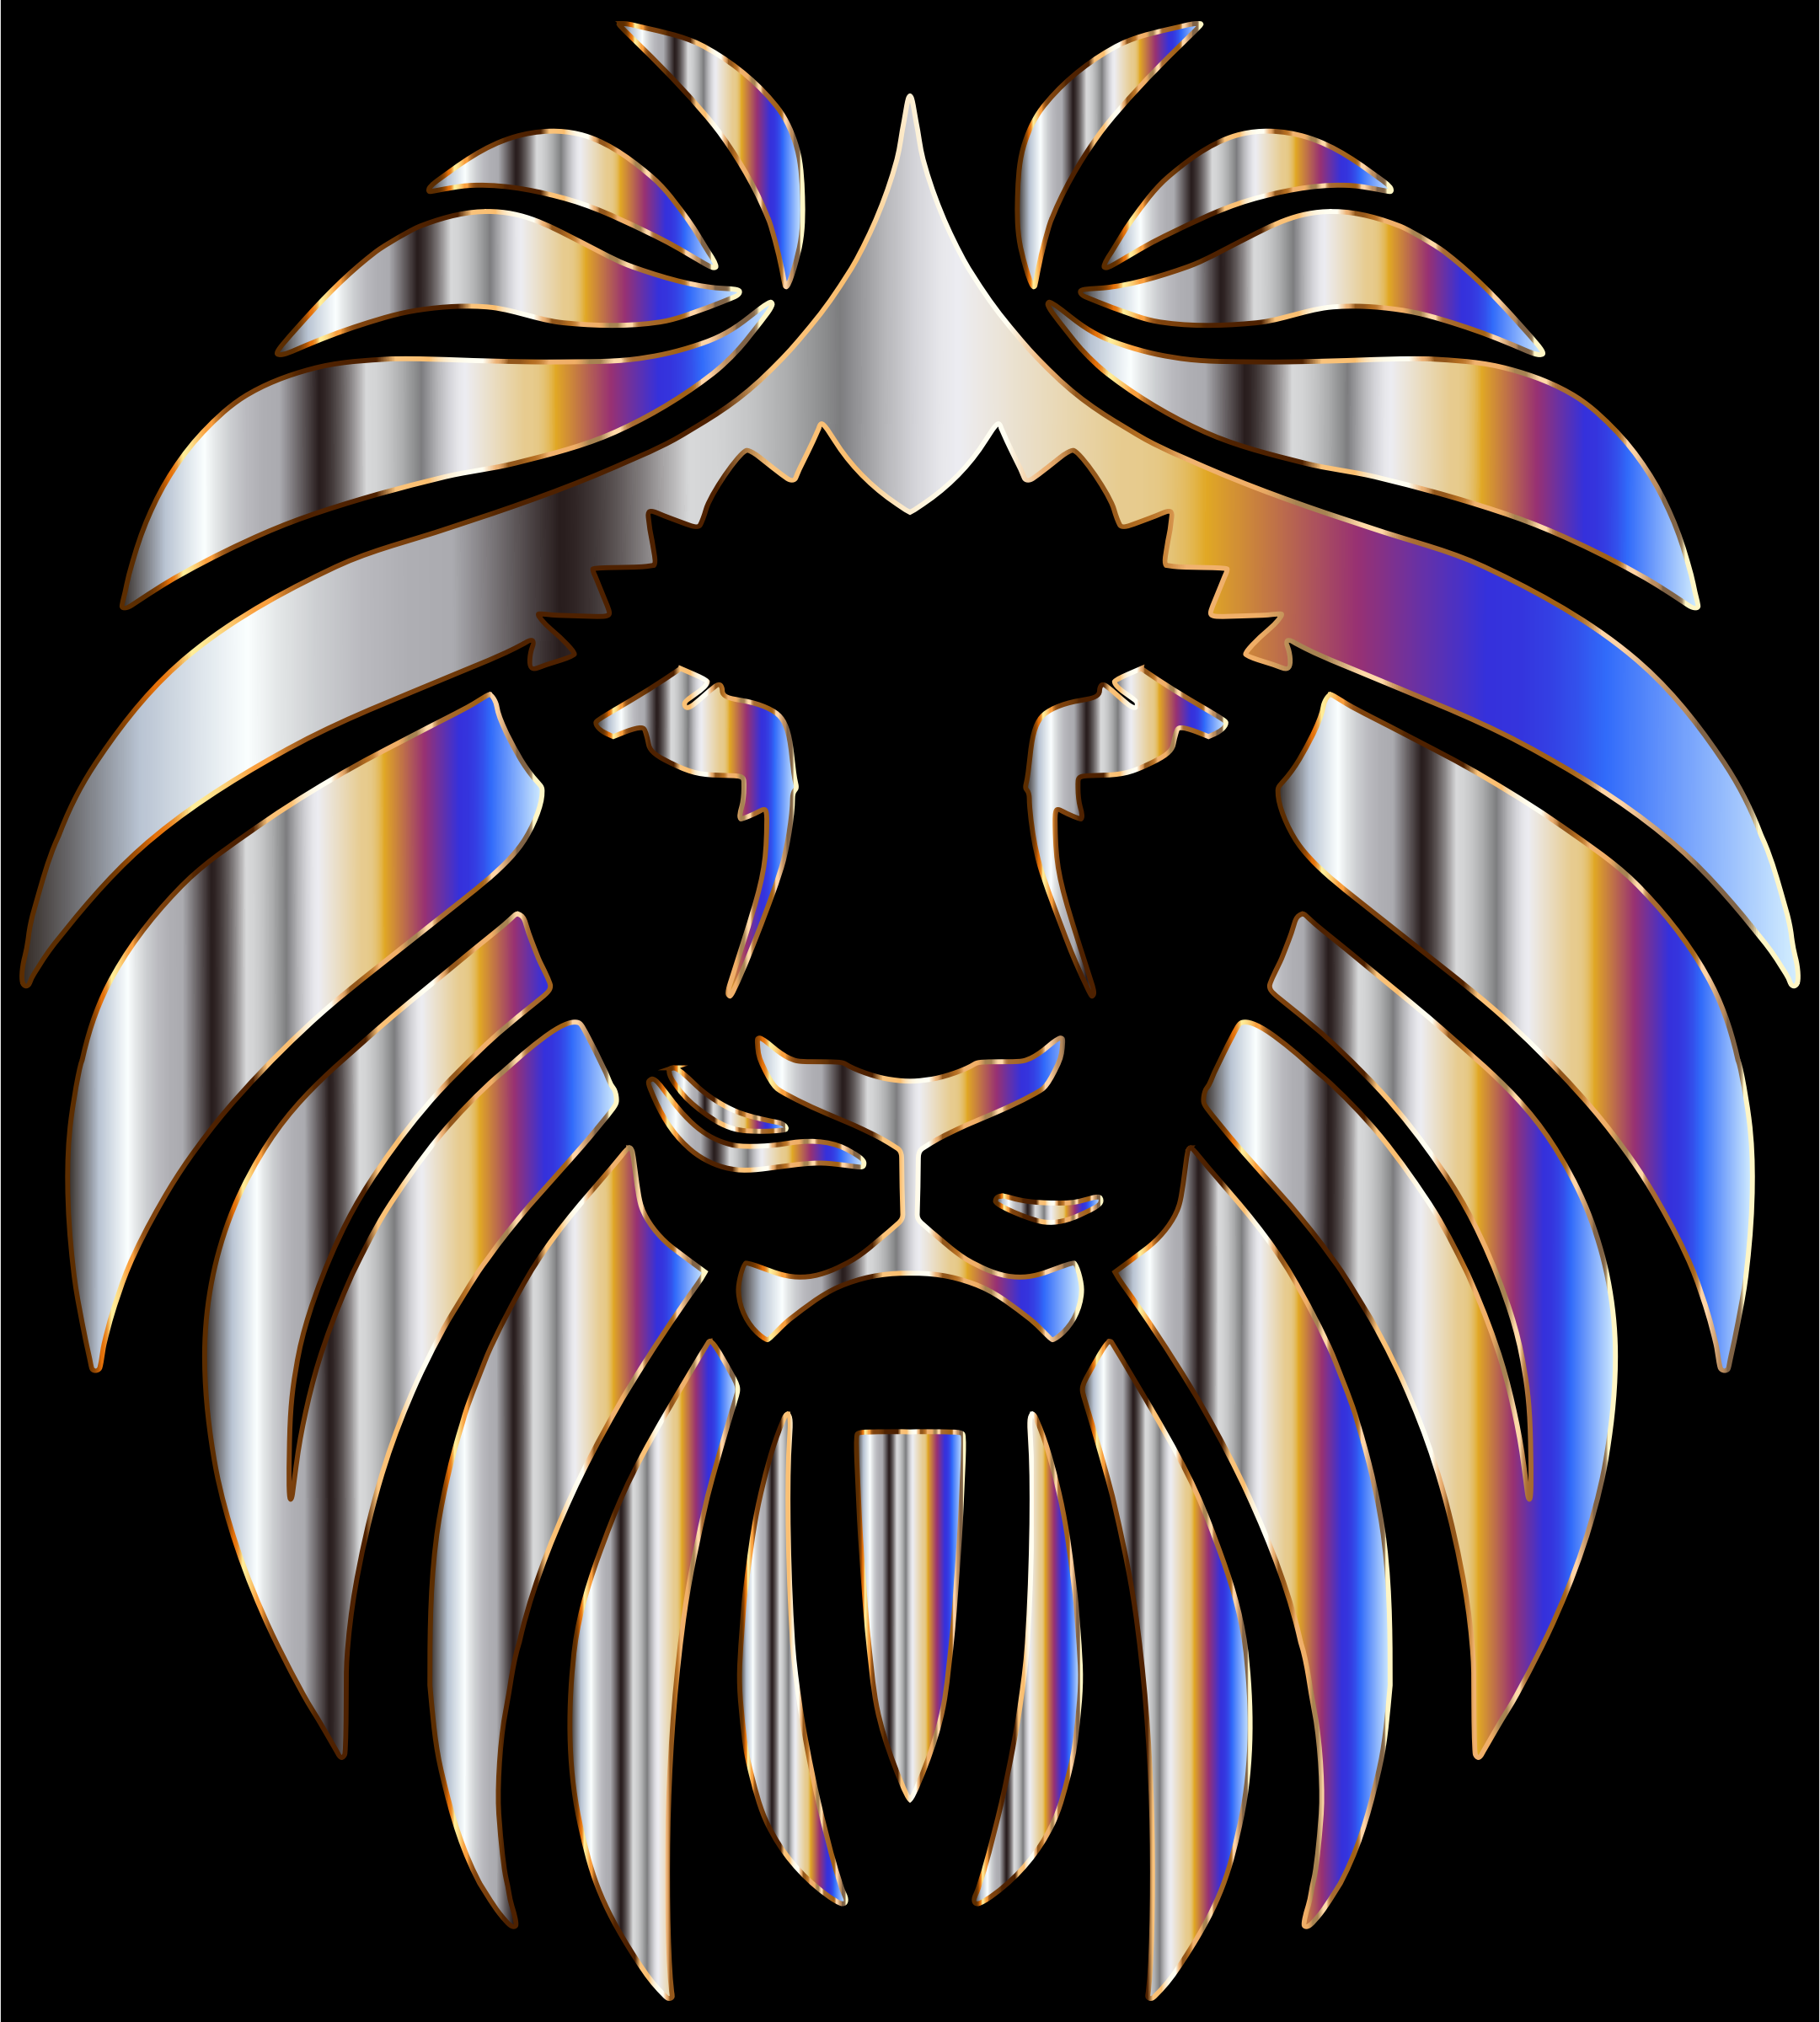 Prismatic Lion 6 by GDJ